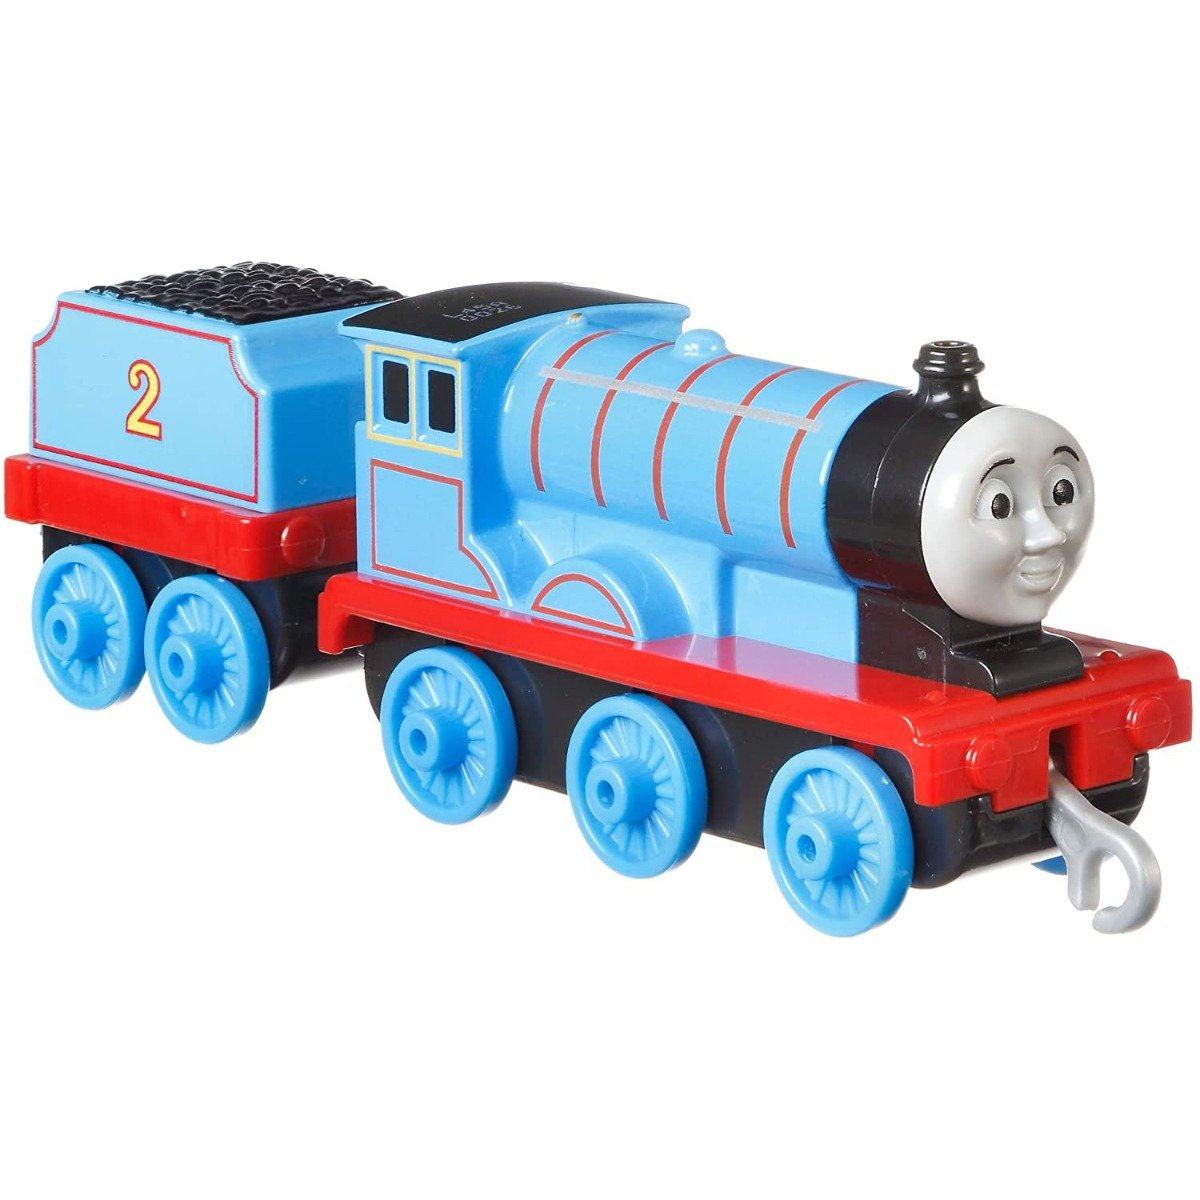 Locomotiva cu vagon Thomas and Friends, Edward GDJ57